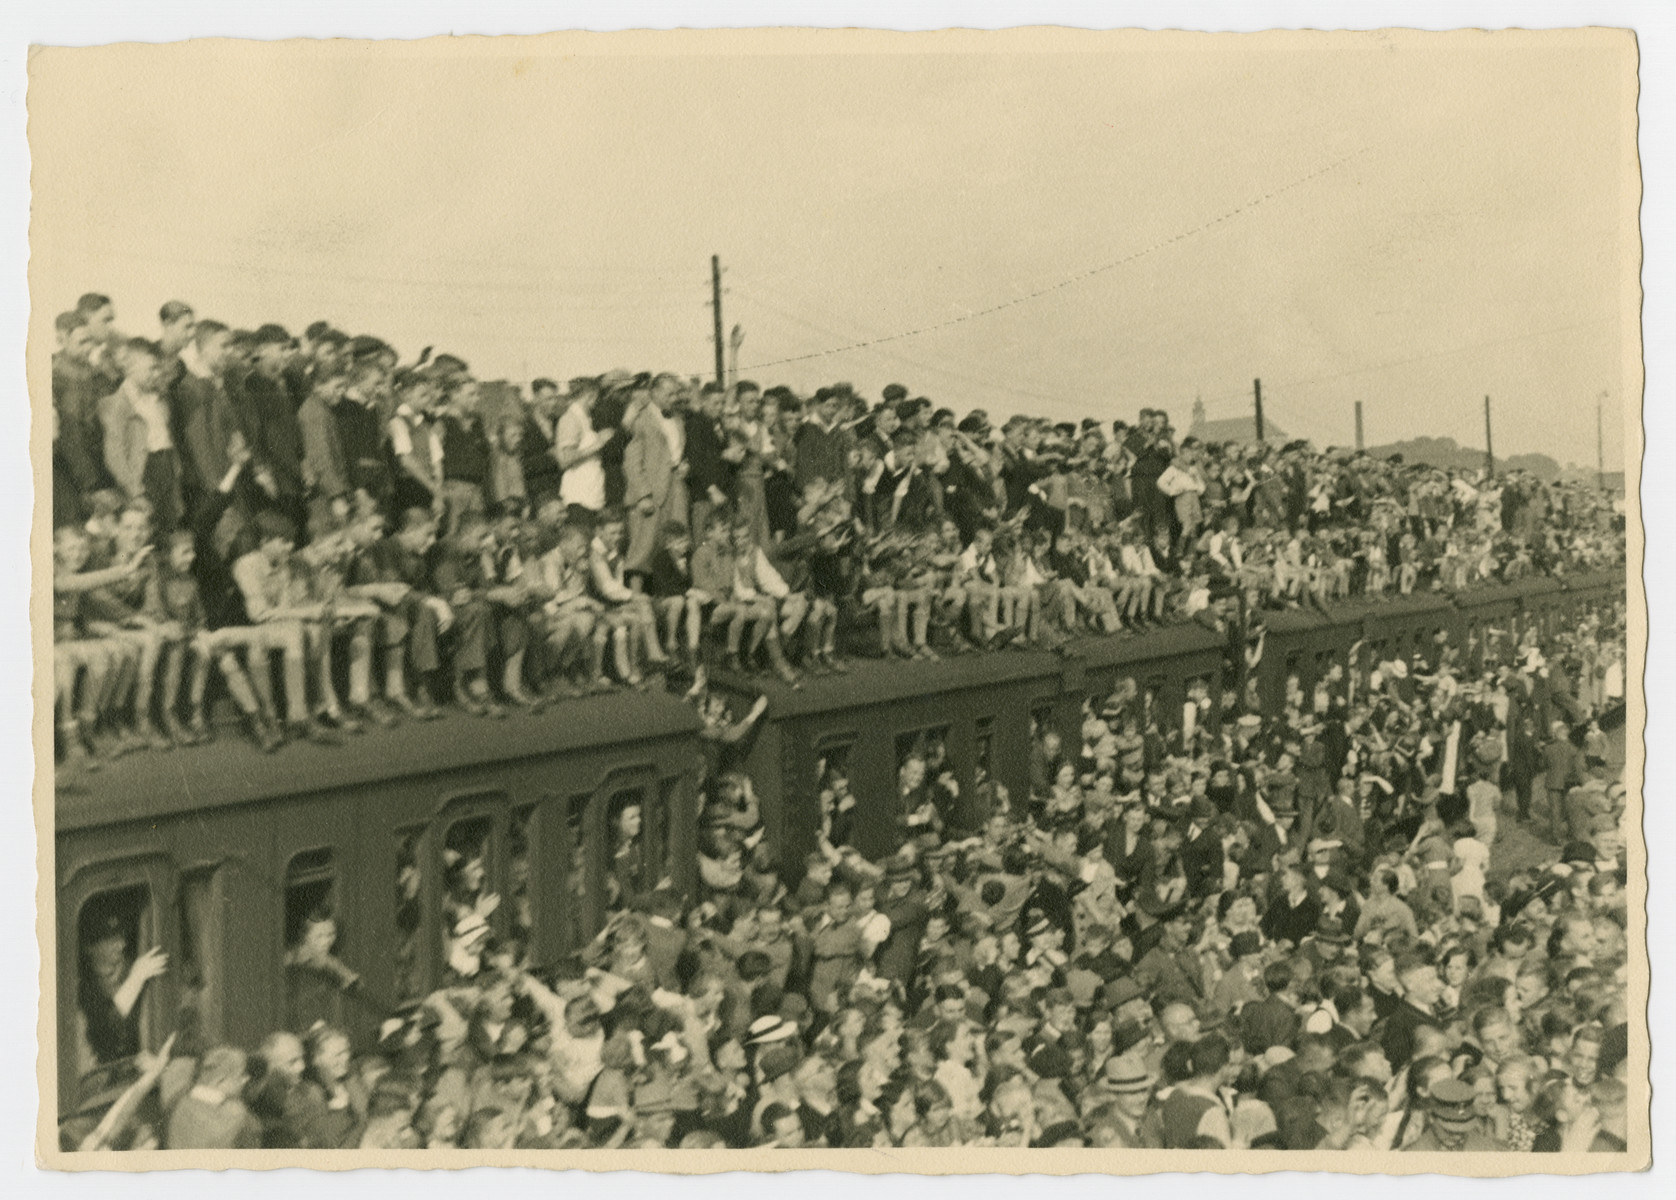 Crowds of people gather in front of and on top of a train to participate in a May Day Nazi party parade.